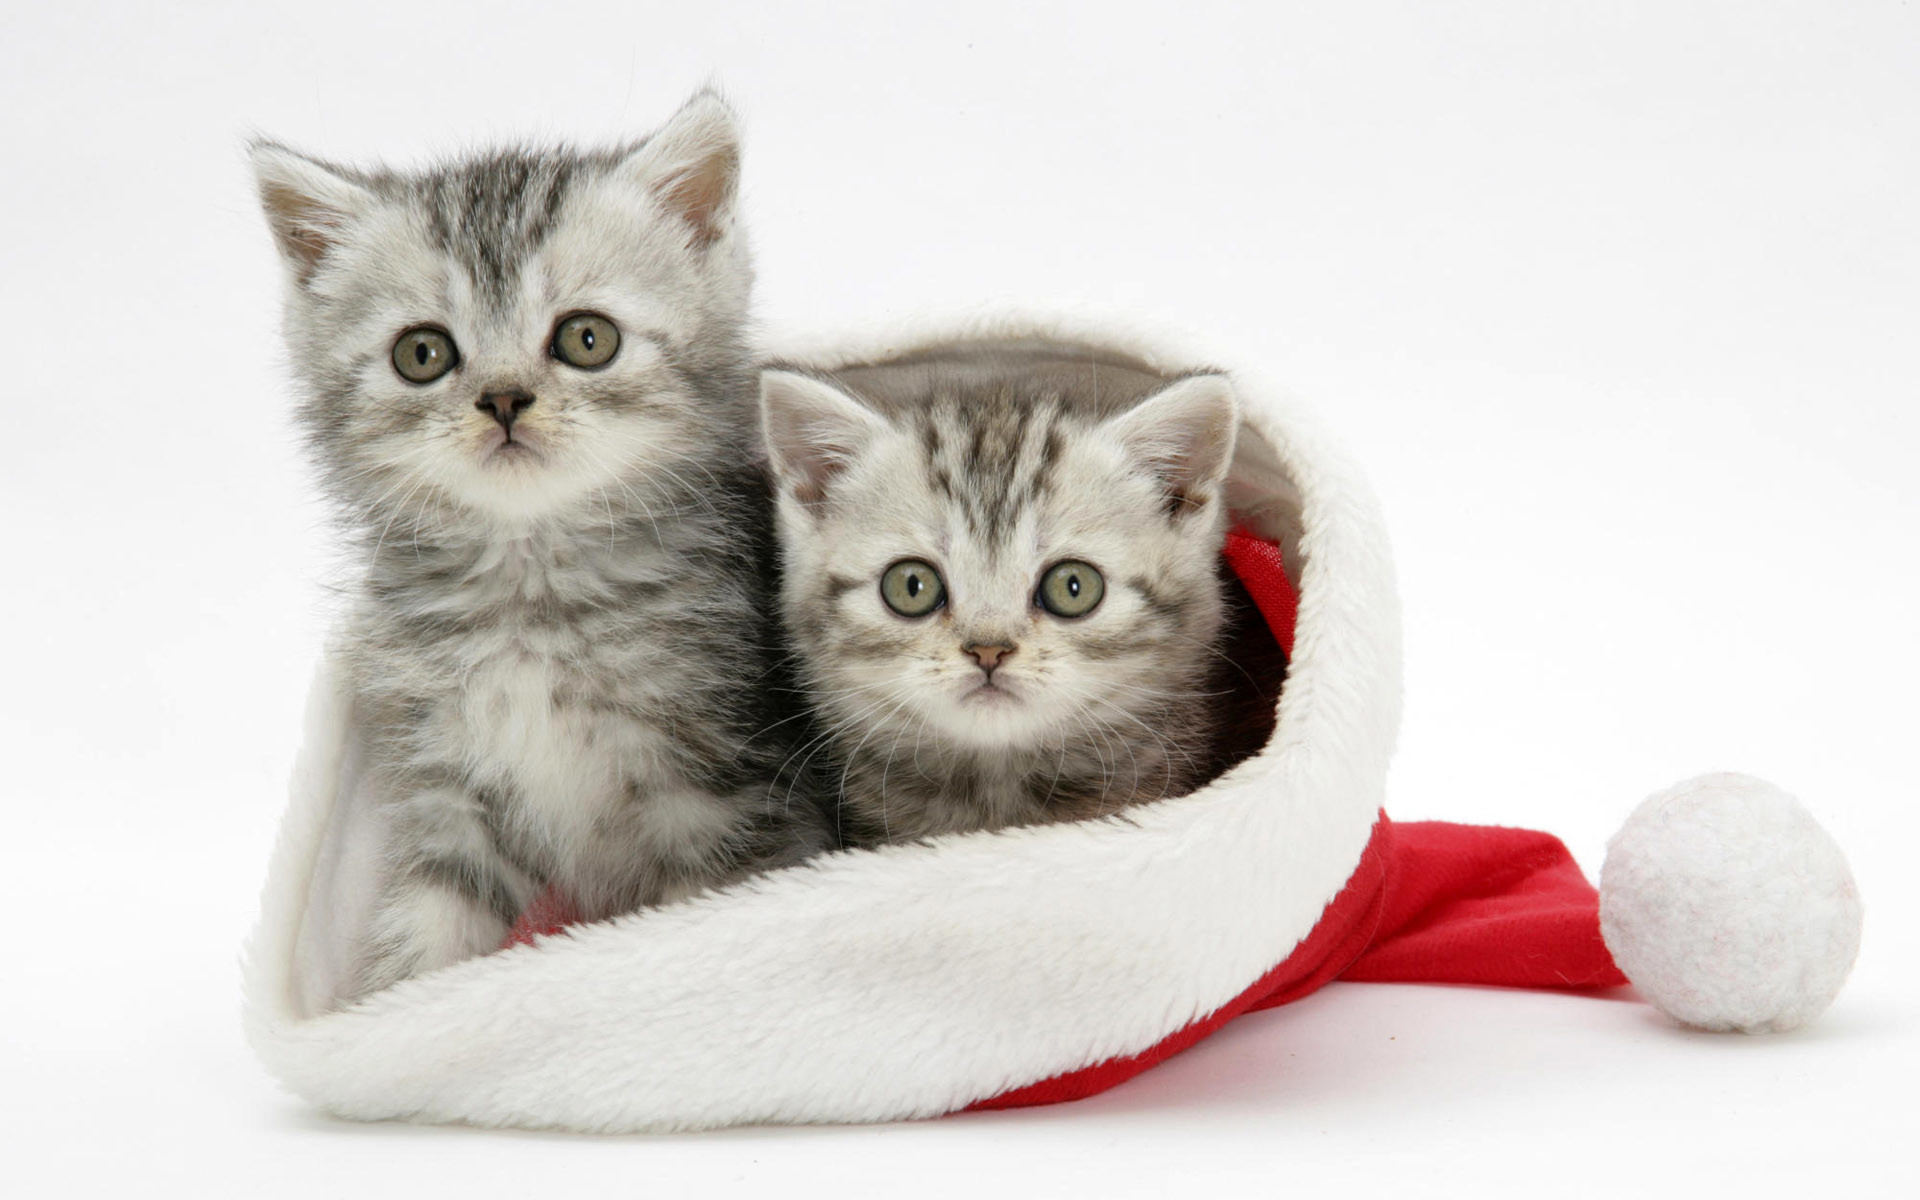 1920x1200 White-Cats-Christmas-Wallpaper-For-Android.jpg (1920×1200) | Wallpapers |  Pinterest | Wallpaper, Mobile wallpaper and Desktop backgrounds